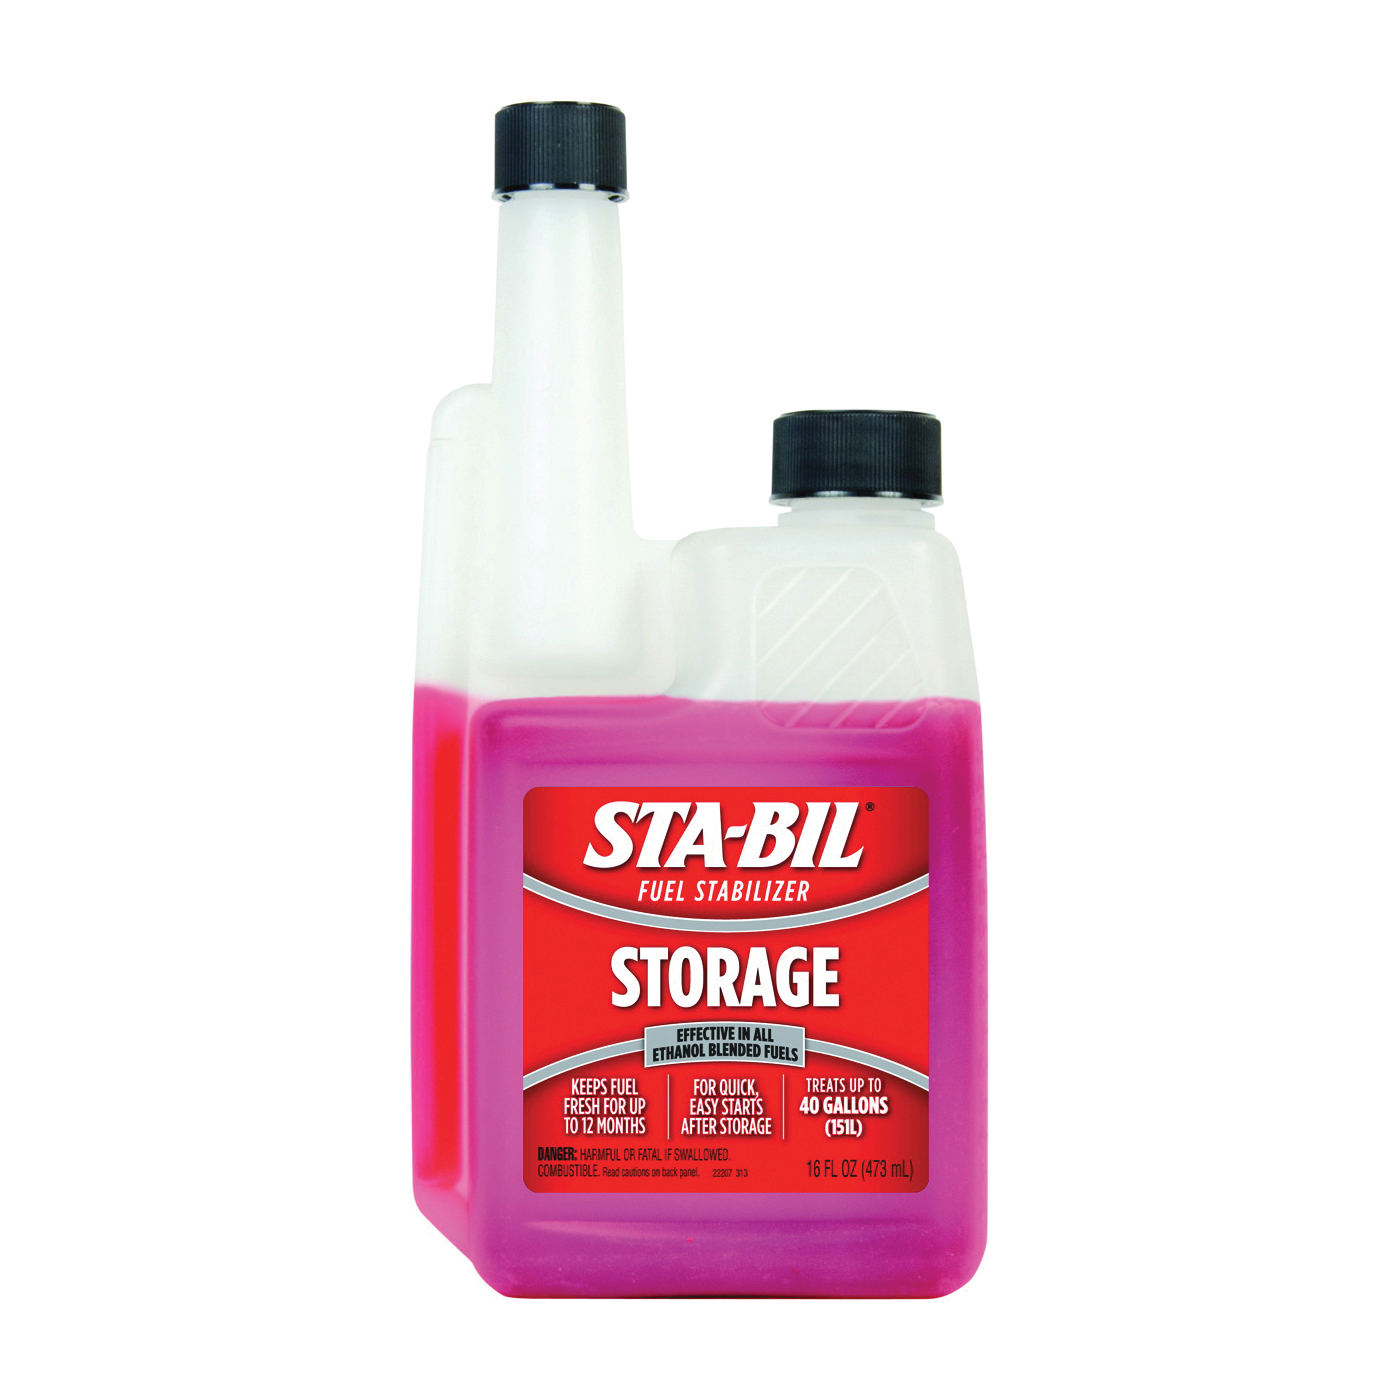 Picture of STA-BIL 22207 Fuel Stabilizer Red, 16 oz Package, Bottle